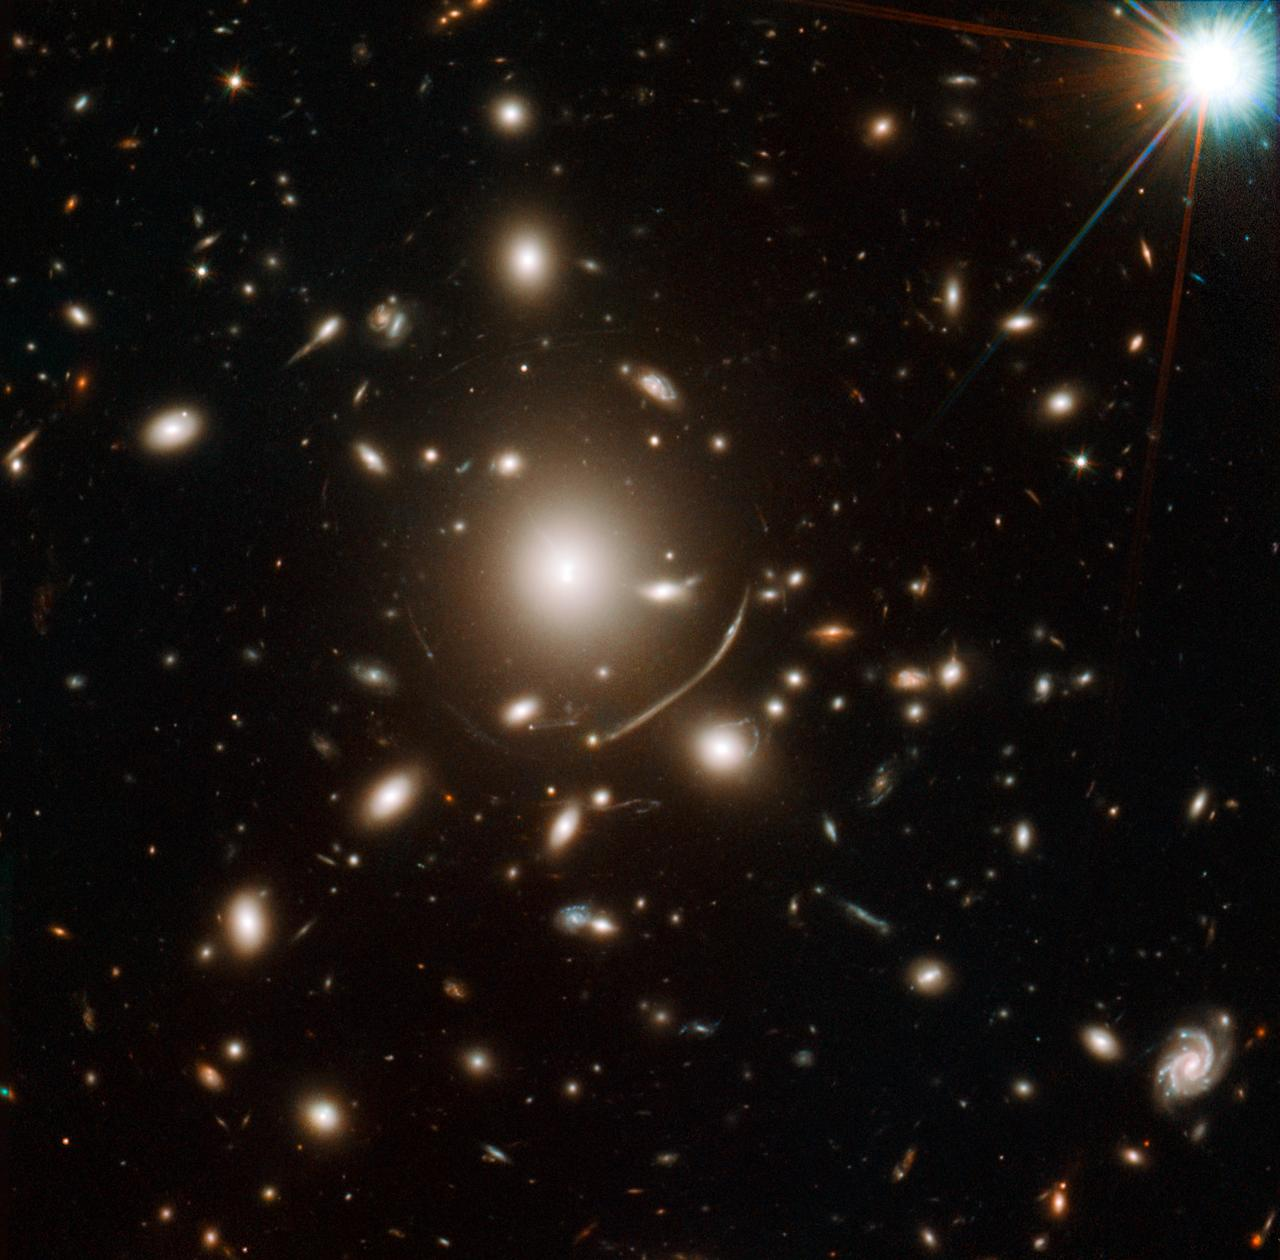 "NASA image release April 12, 2011  Astronomers have uncovered one of the youngest galaxies in the distant universe, with stars that formed 13.5 billion years ago, a mere 200 million years after the Big Bang. The finding addresses questions about when the first galaxies arose, and how the early universe evolved.  NASA's Hubble Space Telescope was the first to spot the newfound galaxy. Detailed observations from the W.M. Keck Observatory on Mauna Kea in Hawaii revealed the observed light dates to when the universe was only 950 million years old; the universe formed about 13.7 billion years ago.  Infrared data from both Hubble and NASA's Spitzer Space Telescope revealed the galaxy's stars are quite mature, having formed when the universe was just a toddler at 200 million years old.  The galaxy's image is being magnified by the gravity of a massive cluster of galaxies (Abell 383) parked in front of it, making it appear 11 times brighter. This phenomenon is called gravitational lensing.  Hubble imaged the lensing galaxy Abell 383 with the Wide Field Camera 3 and the Advanced Camera for Surveys in November 2010 through March 2011.  Credit: NASA, ESA, J. Richard (Center for Astronomical Research/Observatory of Lyon, France), and J.-P. Kneib (Astrophysical Laboratory of Marseille, France)  <b><a href=""http://www.nasa.gov/centers/goddard/home/index.html"" rel=""nofollow"">NASA Goddard Space Flight Center</a></b> enables NASA's mission through four scientific endeavors: Earth Science, Heliophysics, Solar System Exploration, and Astrophysics. Goddard plays a leading role in NASA's accomplishments by contributing compelling scientific knowledge to advance the Agency's mission.  <b>Follow us on <a href=""http://twitter.com/NASA_GoddardPix"" rel=""nofollow"">Twitter</a></b>  <b>Join us on <a href=""http://www.facebook.com/pages/Greenbelt-MD/NASA-Goddard/395013845897?ref=tsd"" rel=""nofollow"">Facebook</a></b>"